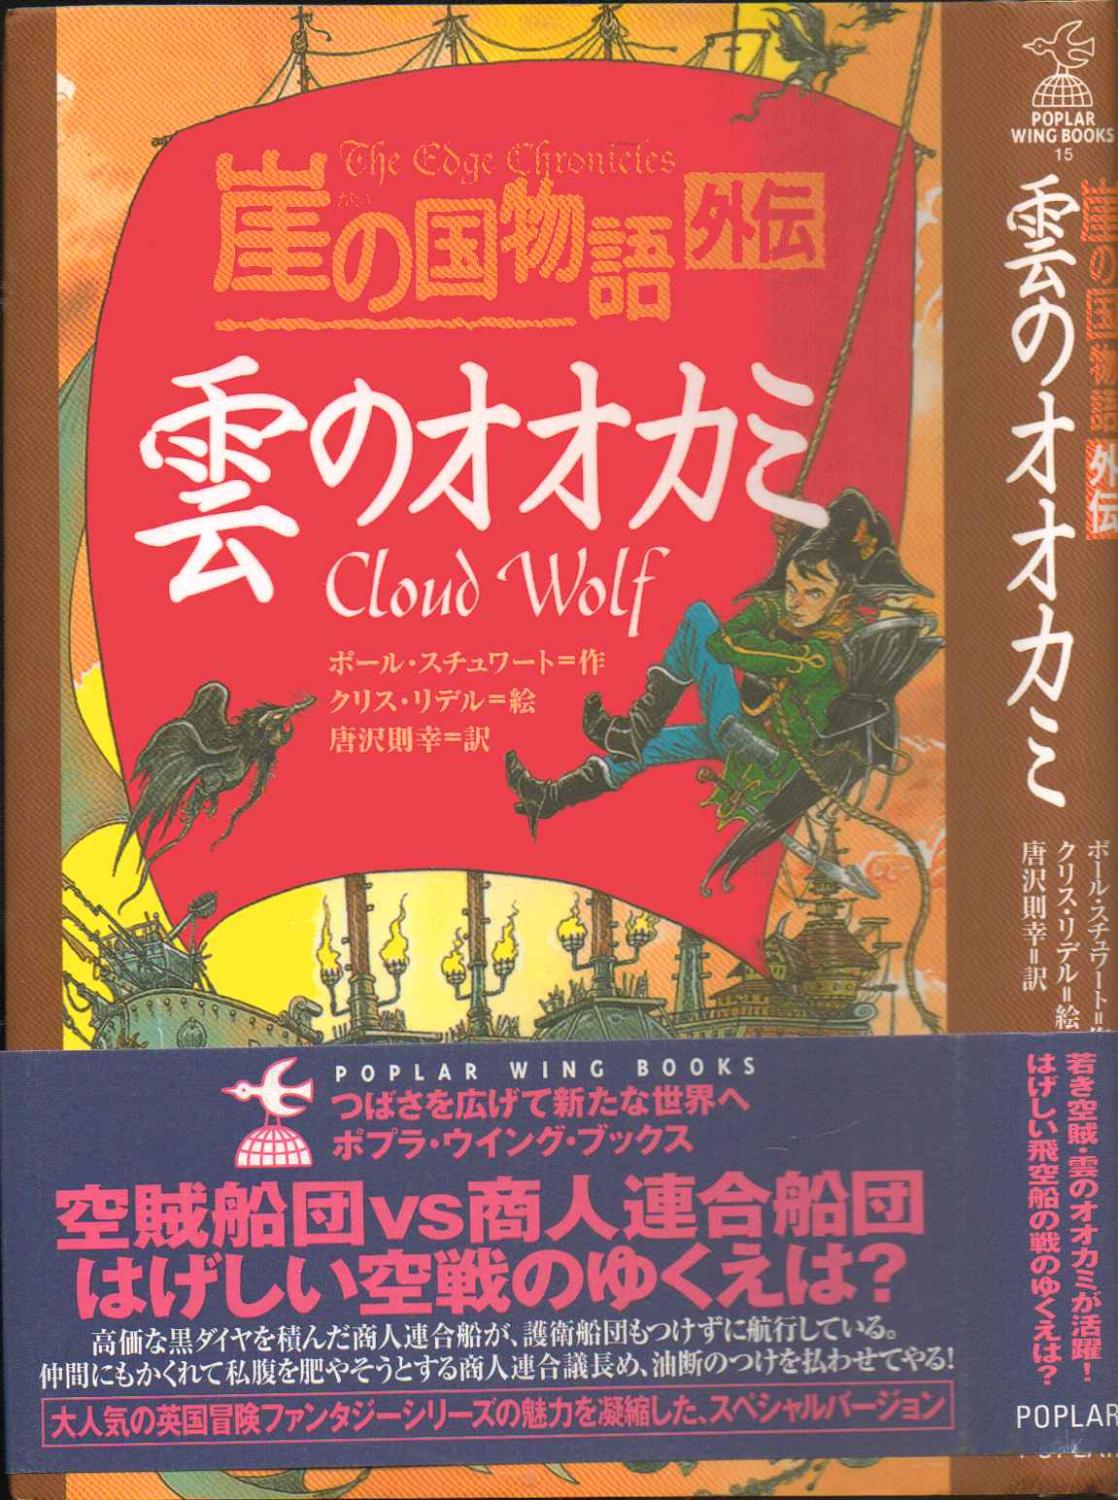 CLOUD WOLF --THE EDGE CHRONICLES--- JAPANESE LANUAGE - Paul Stewart; Translated Into Japanese by Noriyuki Karasawa